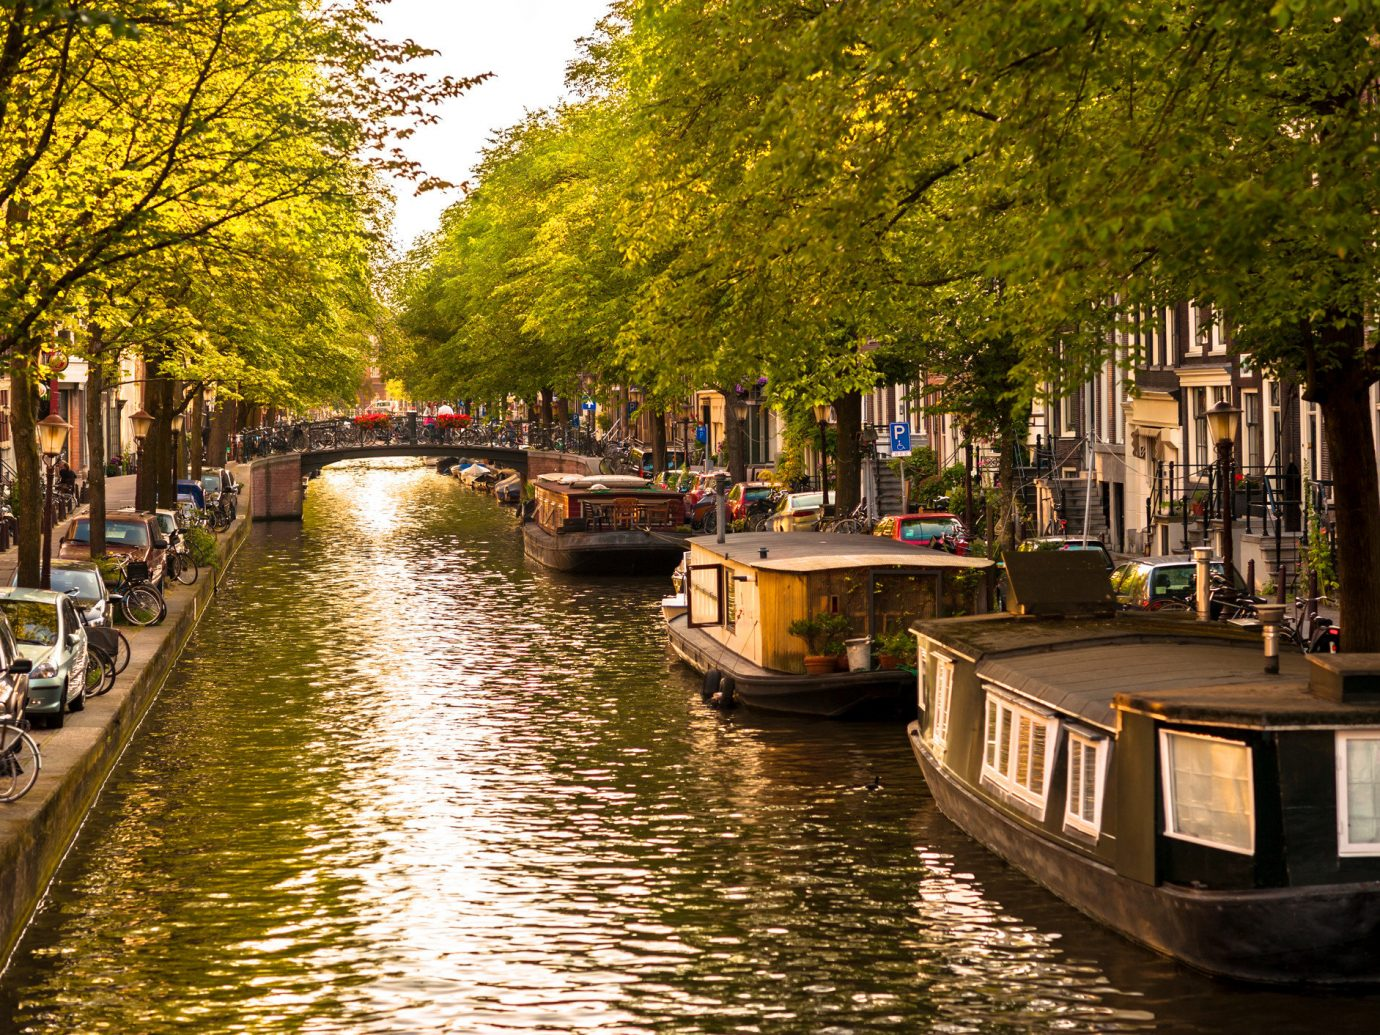 Travel Tips tree outdoor water Canal waterway reflection Boat body of water plant River Town City evening channel street bank night autumn watercourse lined several surrounded